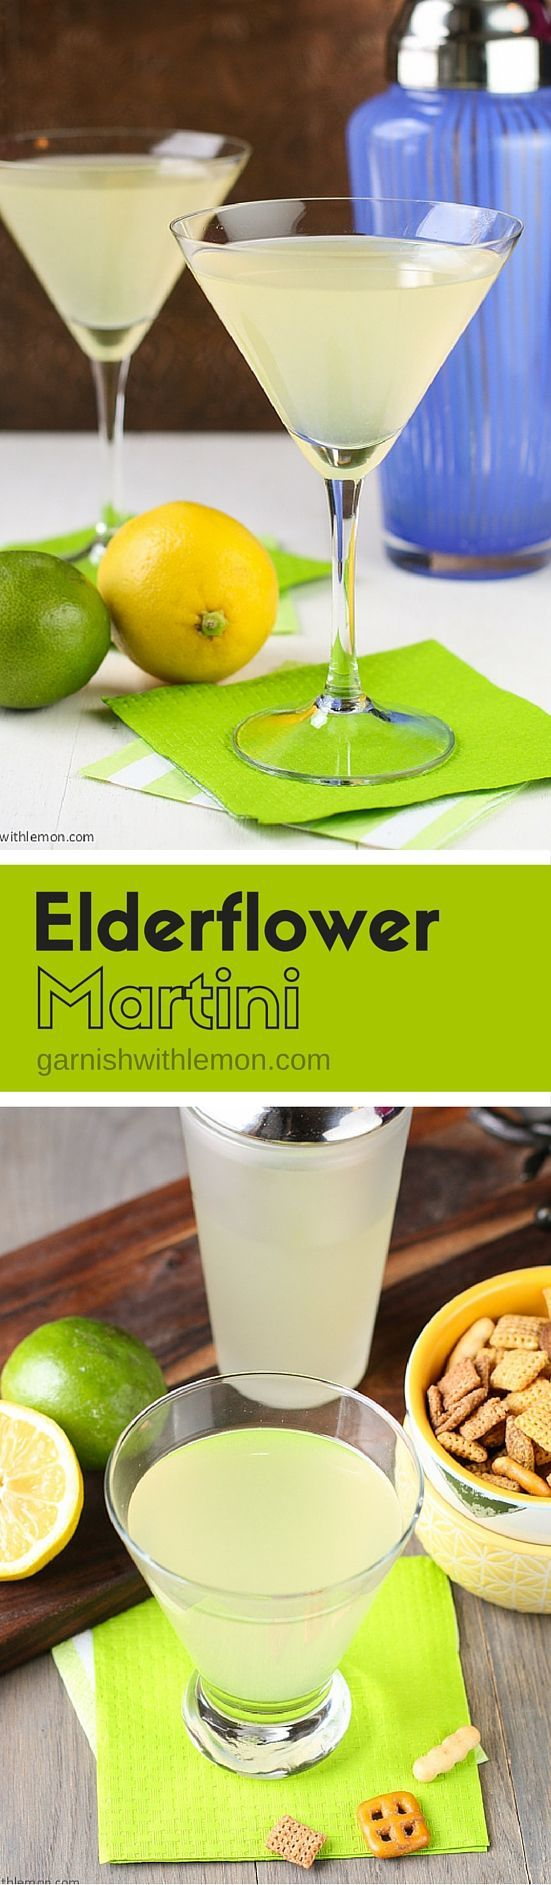 This Elderflower Martini - made with gin, vodka & St. Germain Liqueur - is one of our most requested #cocktail #recipes. Make it batch style for groups! ~ www.garnishwithle...